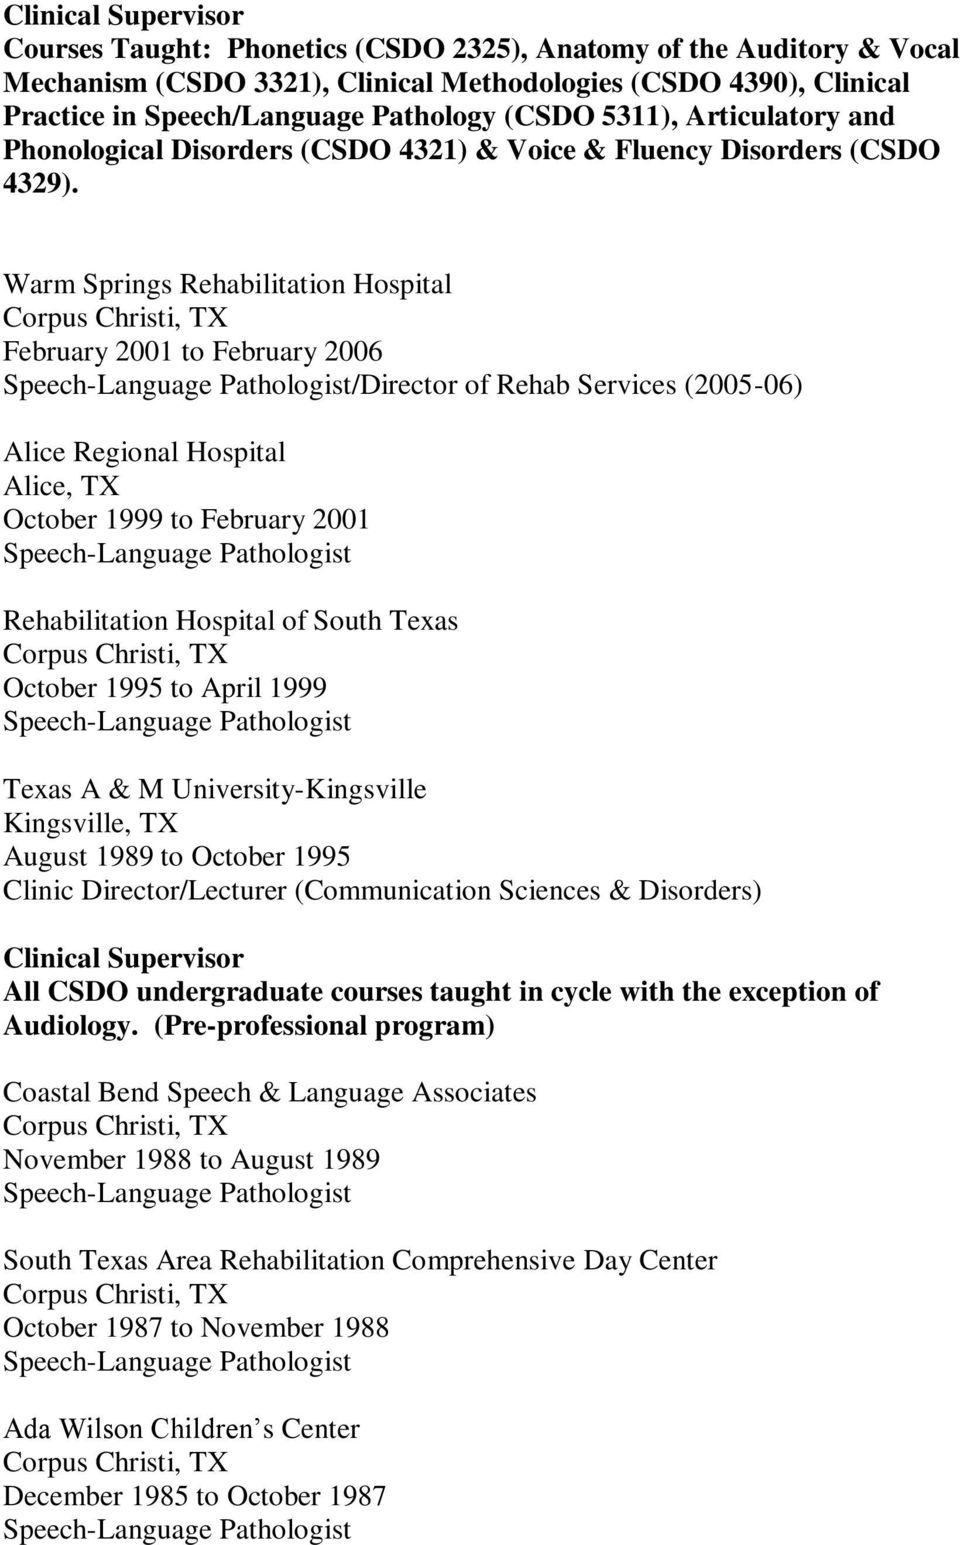 Warm Springs Rehabilitation Hospital February 2001 to February 2006 /Director of Rehab Services (2005-06) Alice Regional Hospital Alice, TX October 1999 to February 2001 Rehabilitation Hospital of